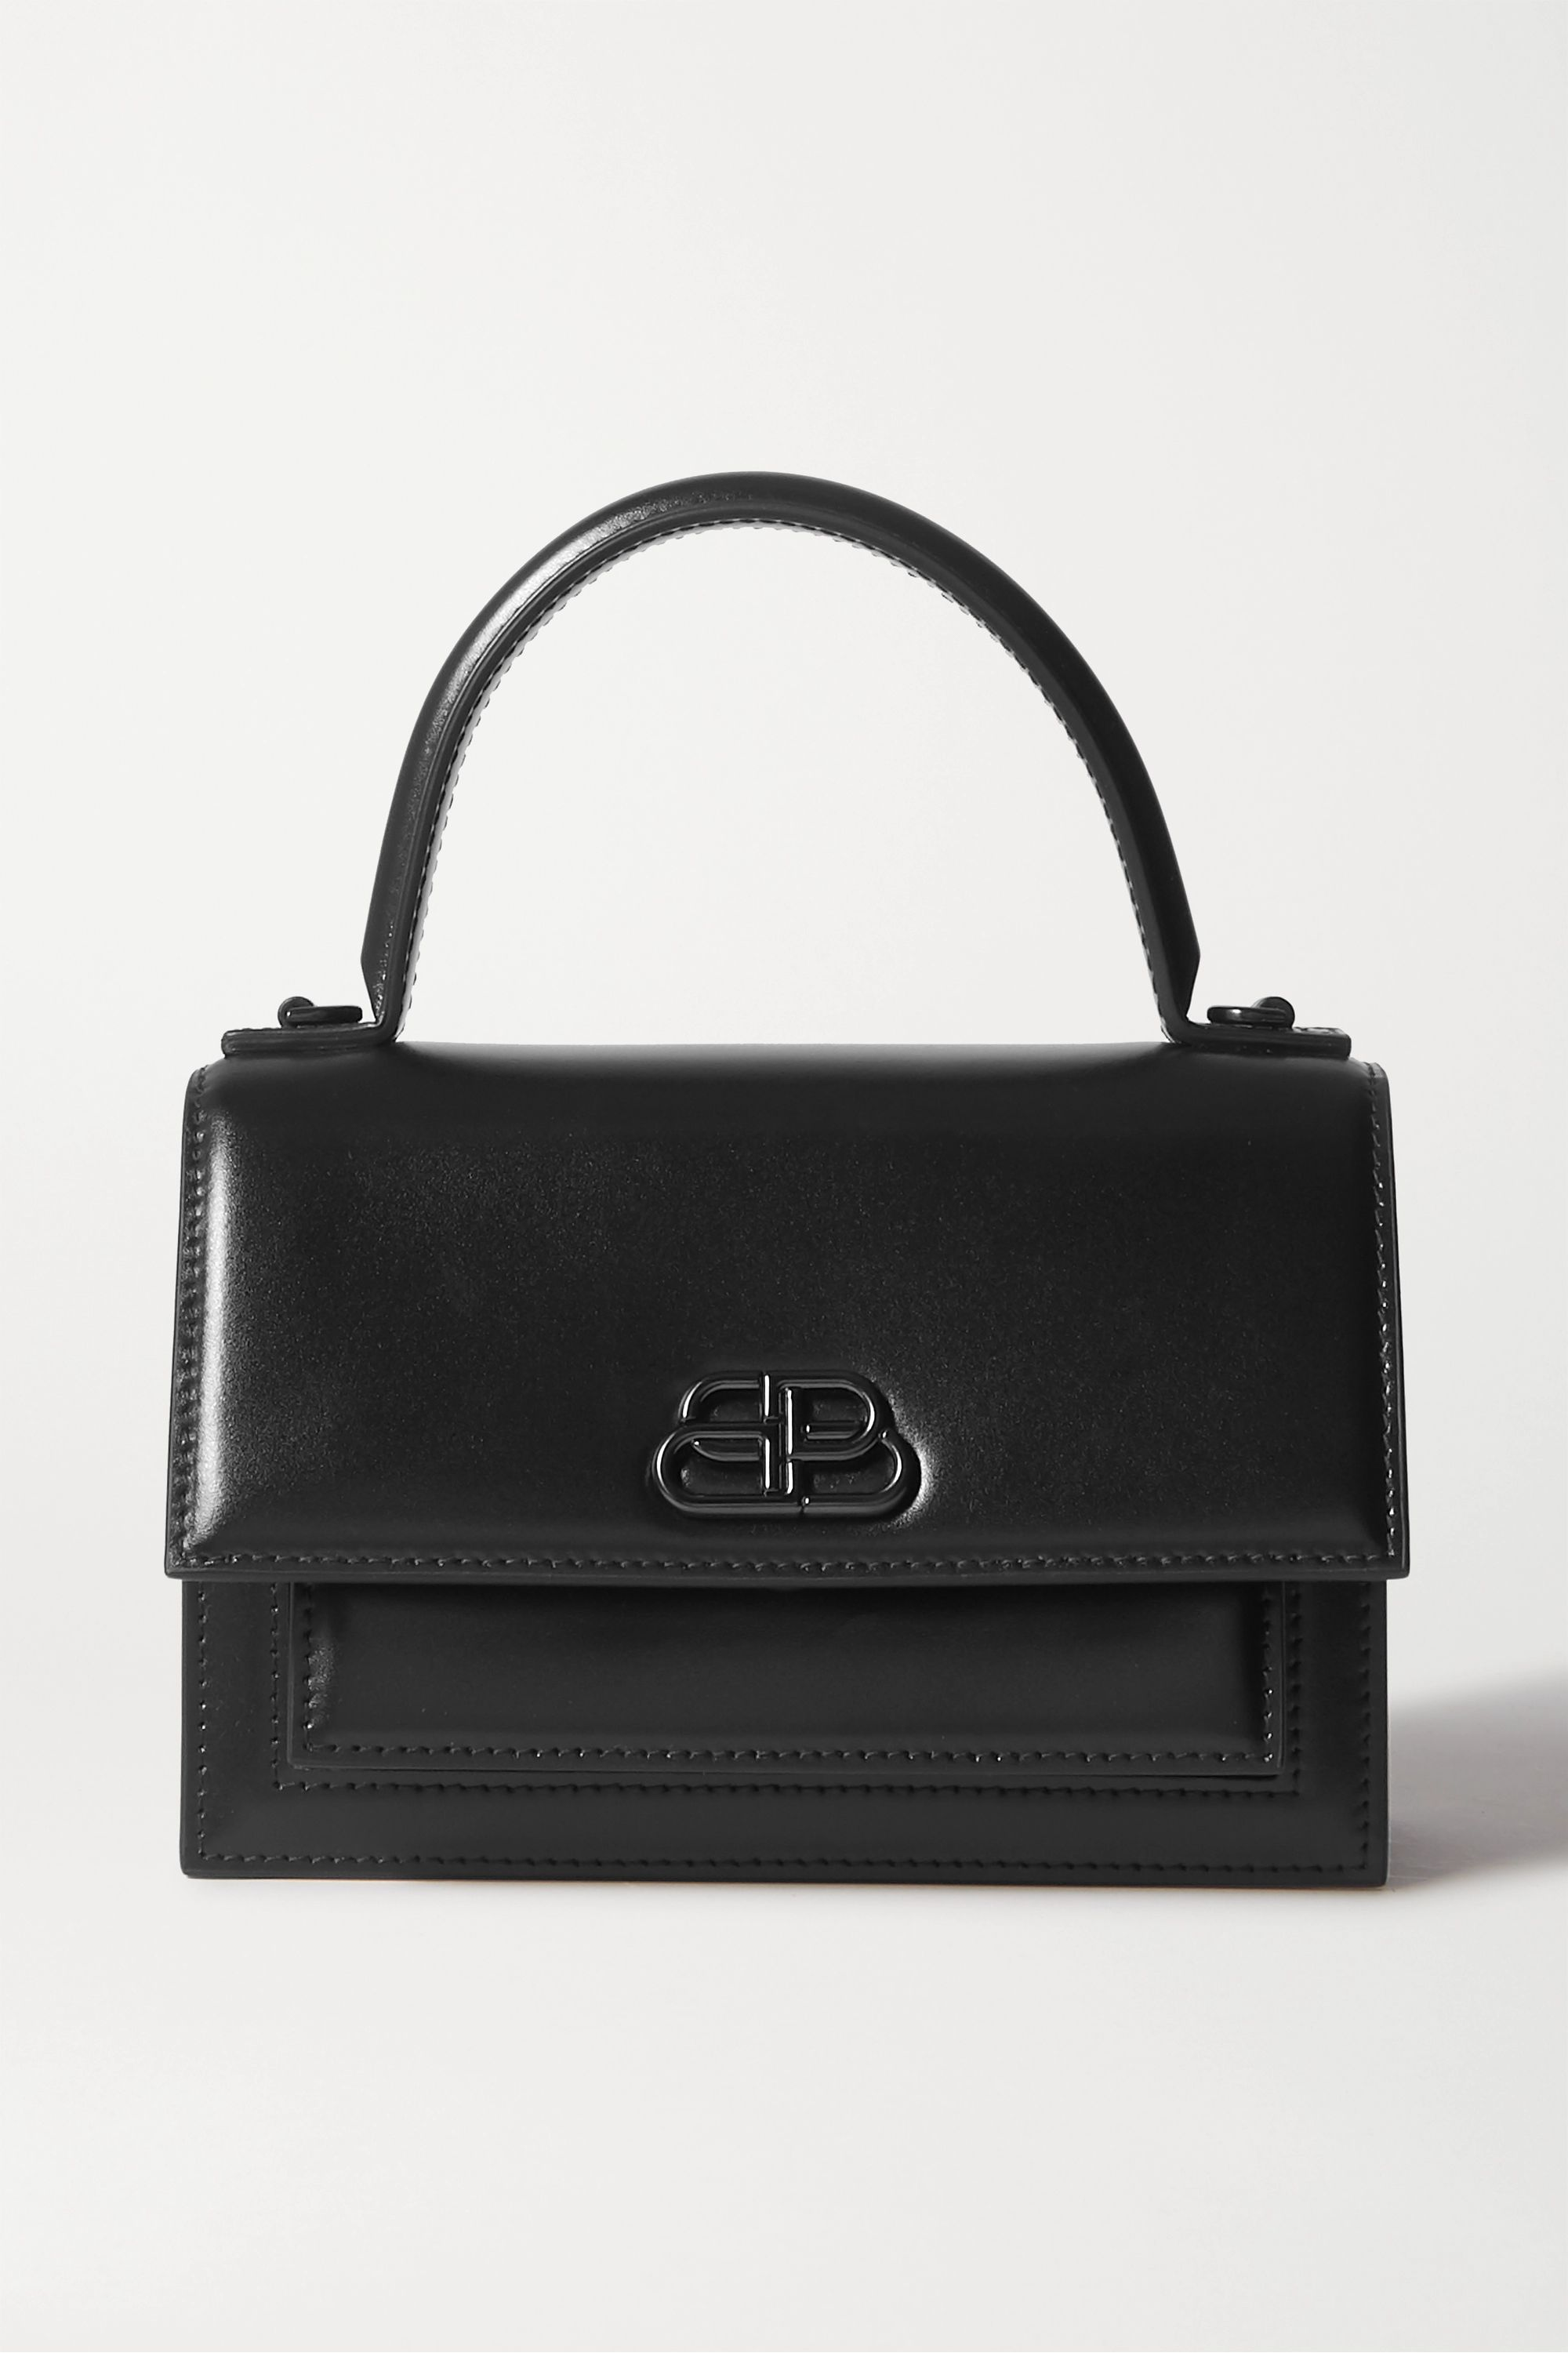 Balenciaga Sac à main en cuir Sharp Mini